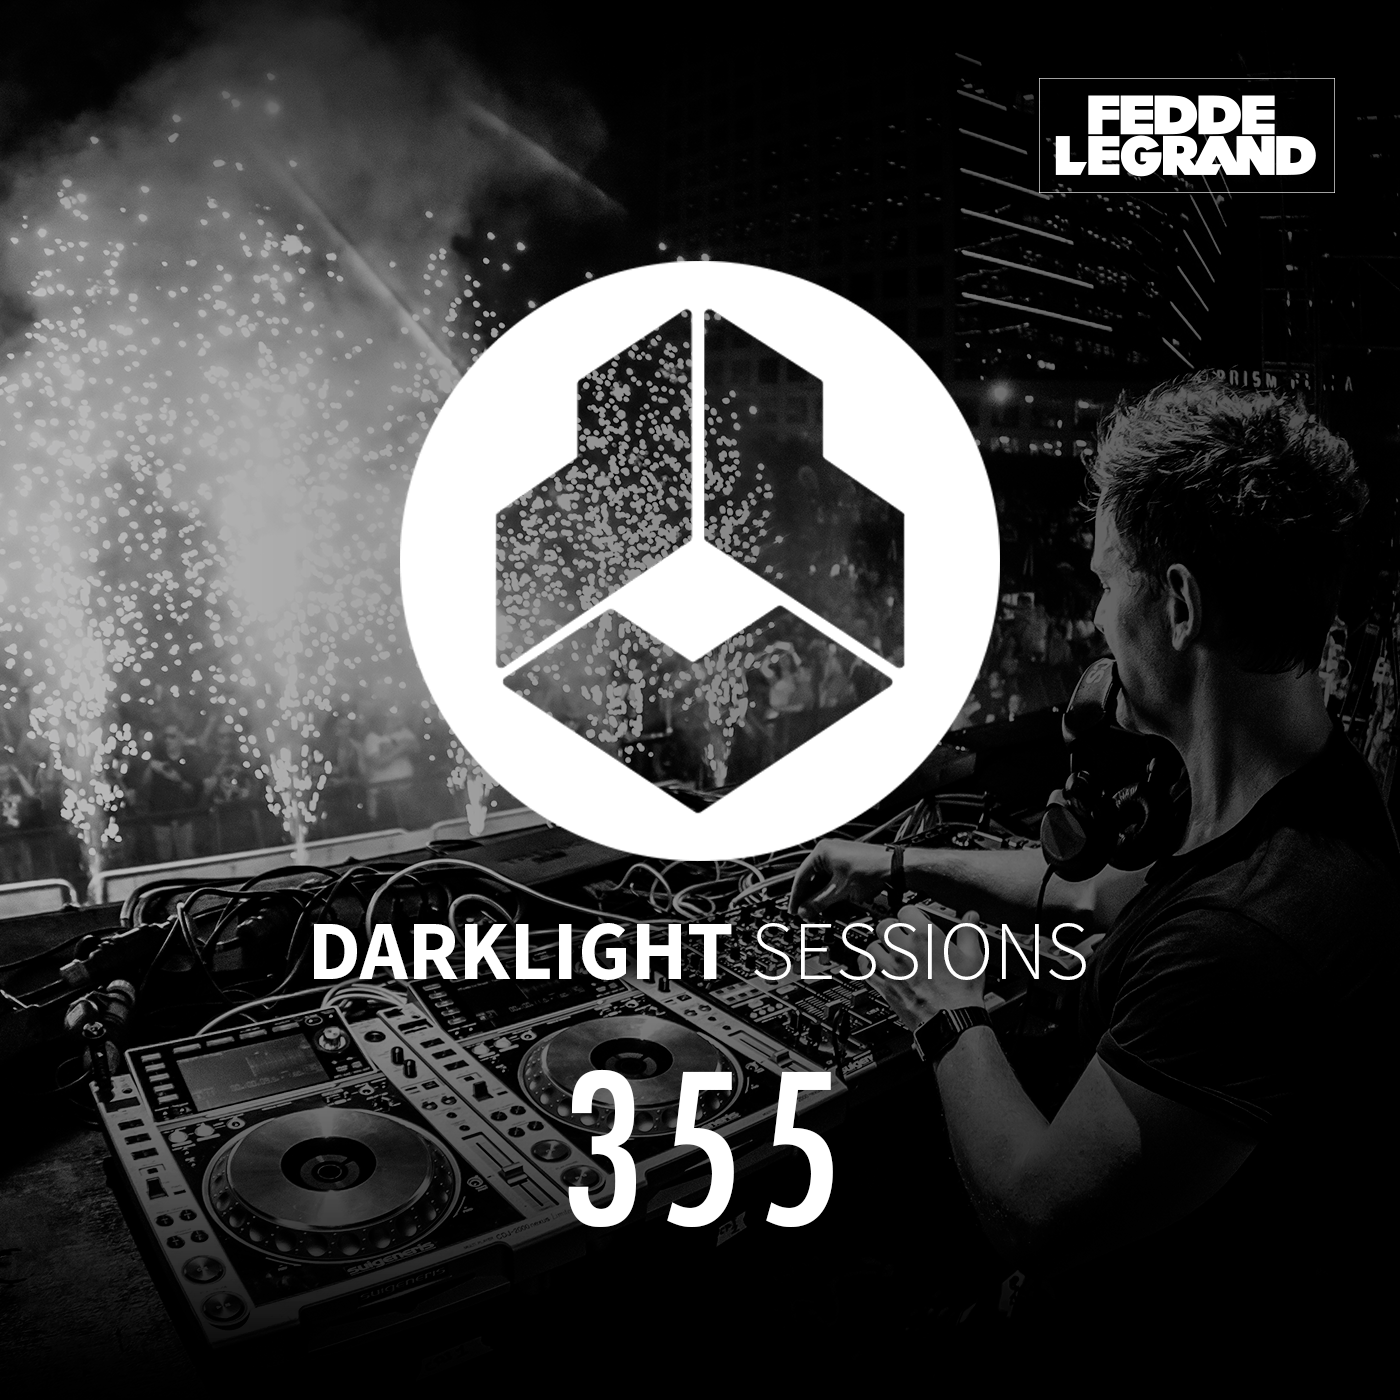 Darklight Sessions 355